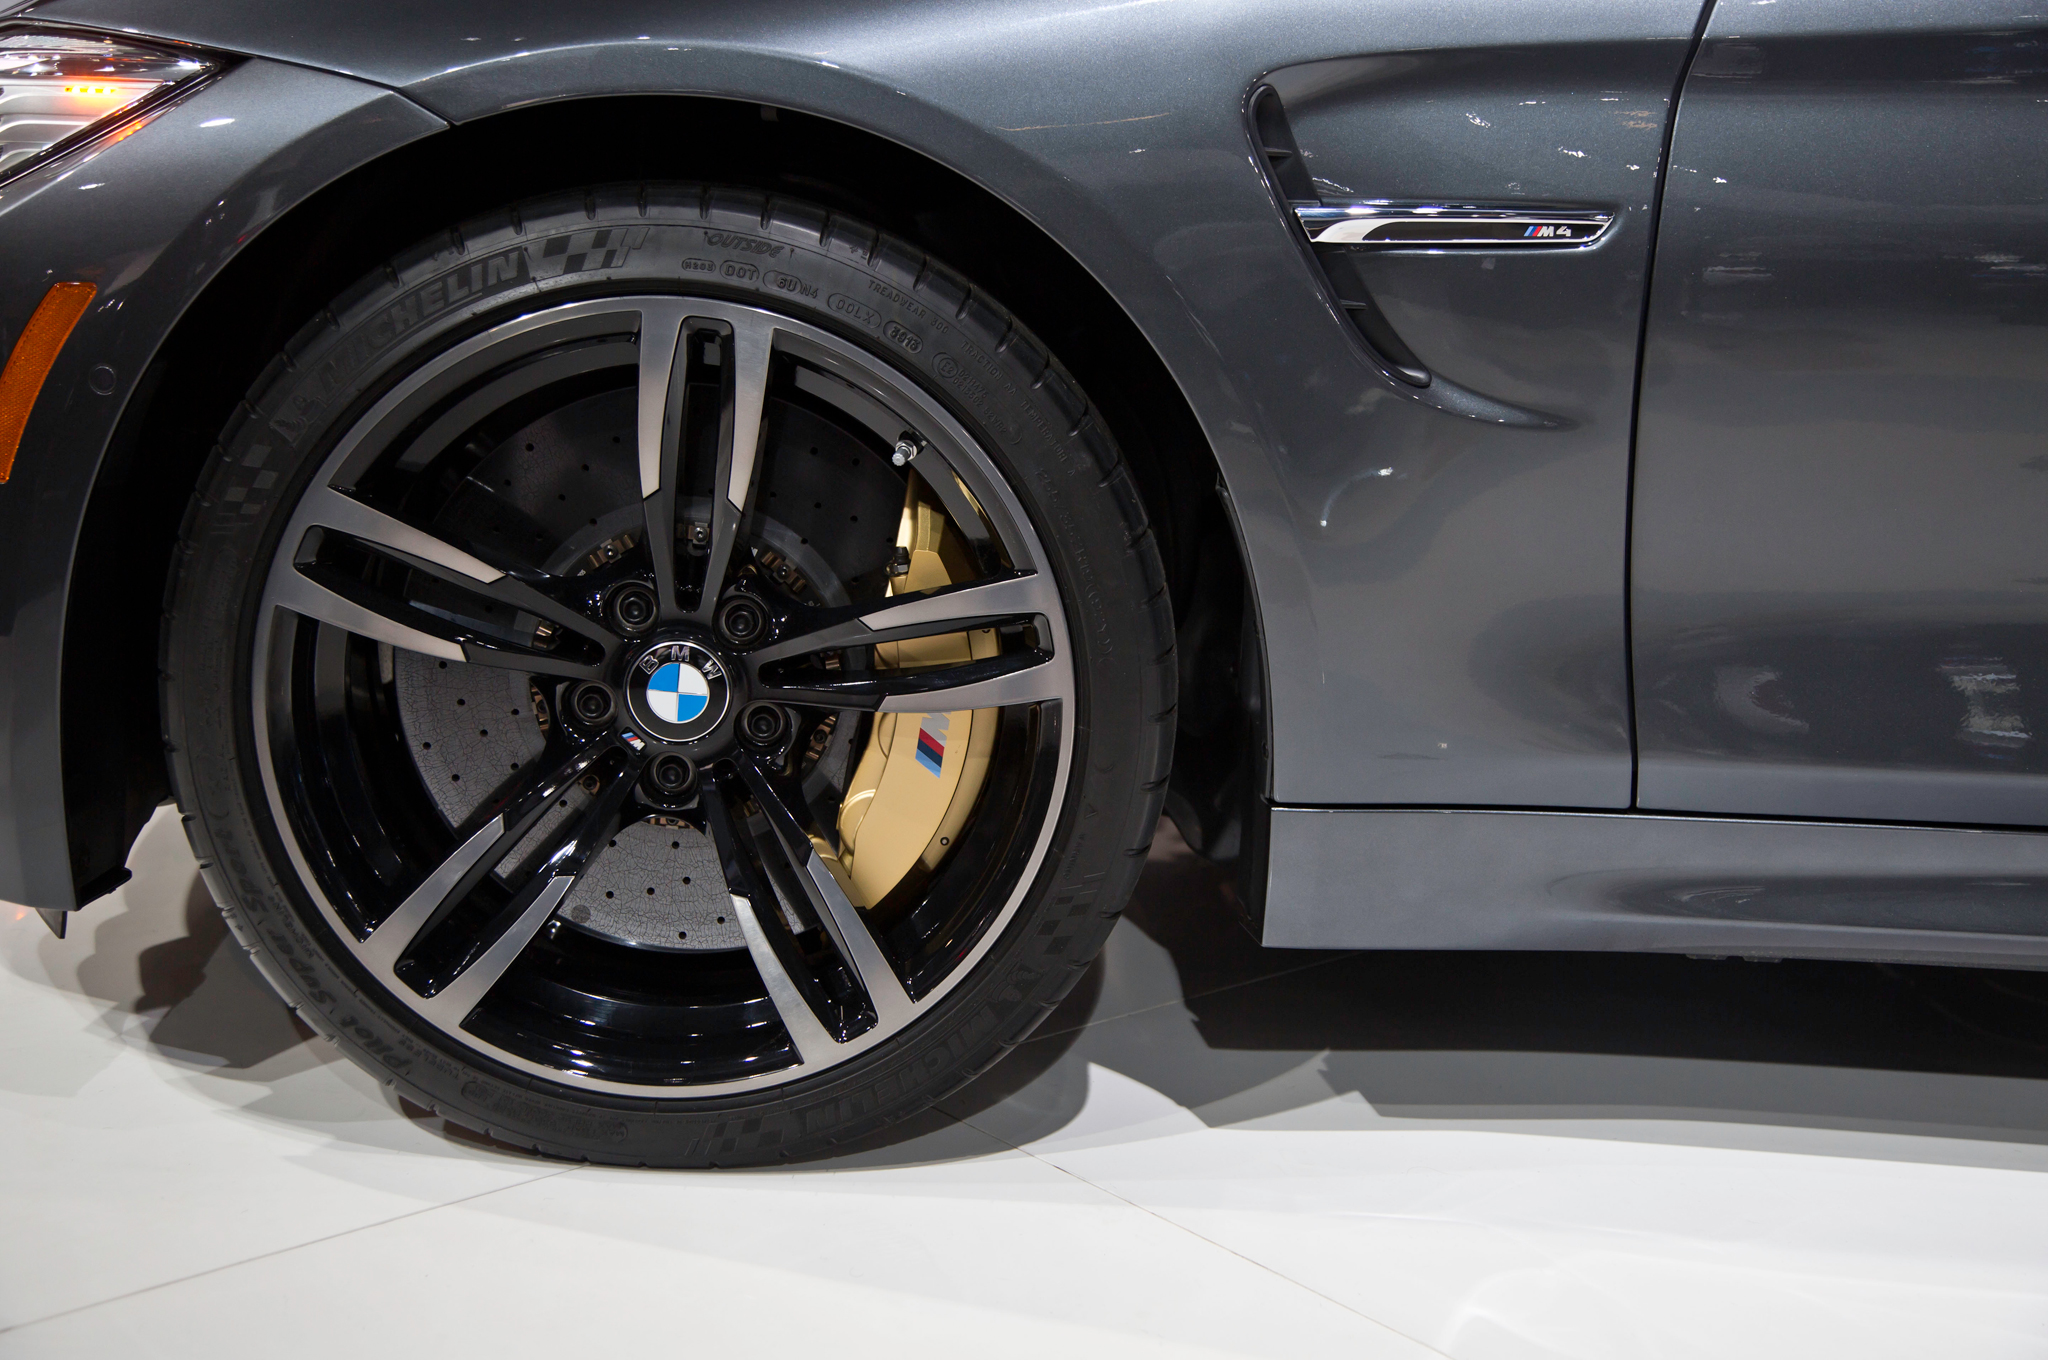 2015 Bmw M4 Convertible Wheels Details (Photo 6 of 50)